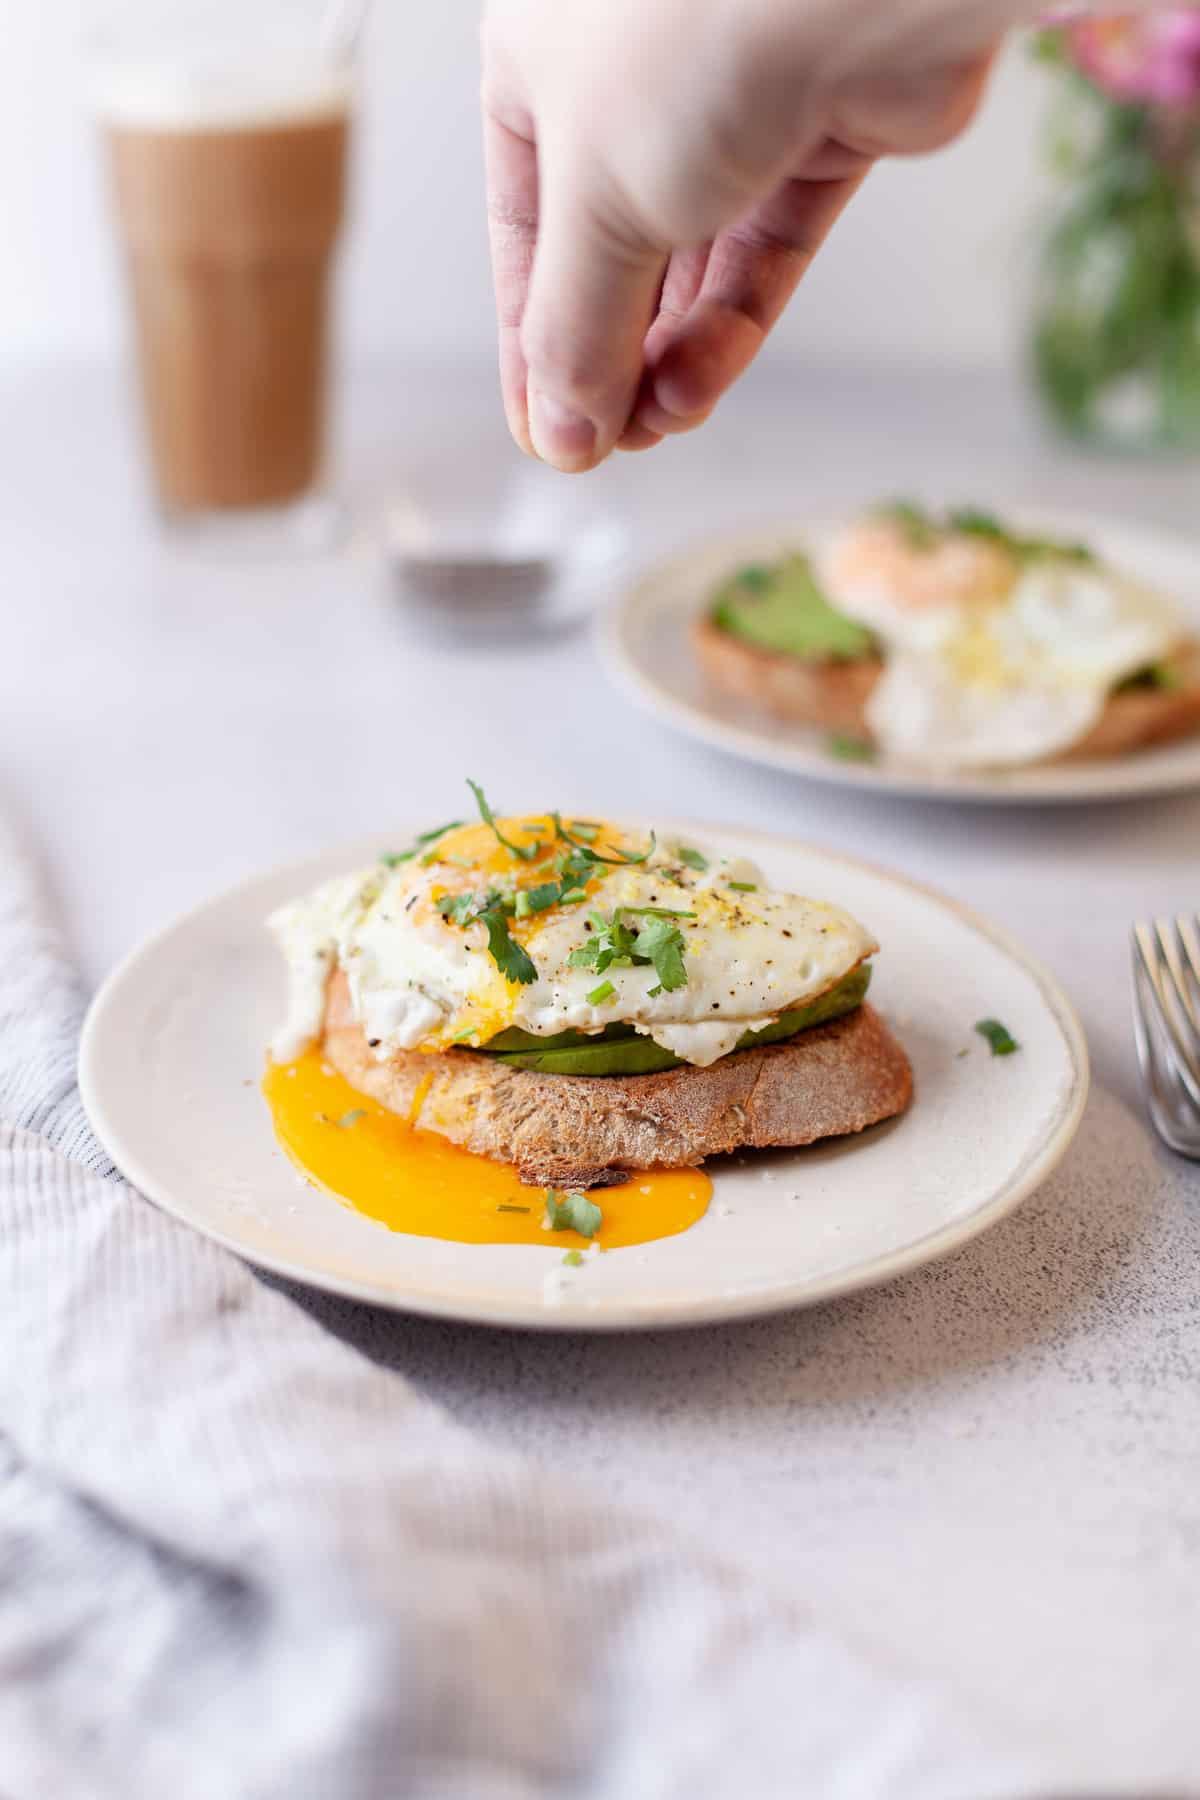 A hand sprinkling herbs on avocado toast with egg.